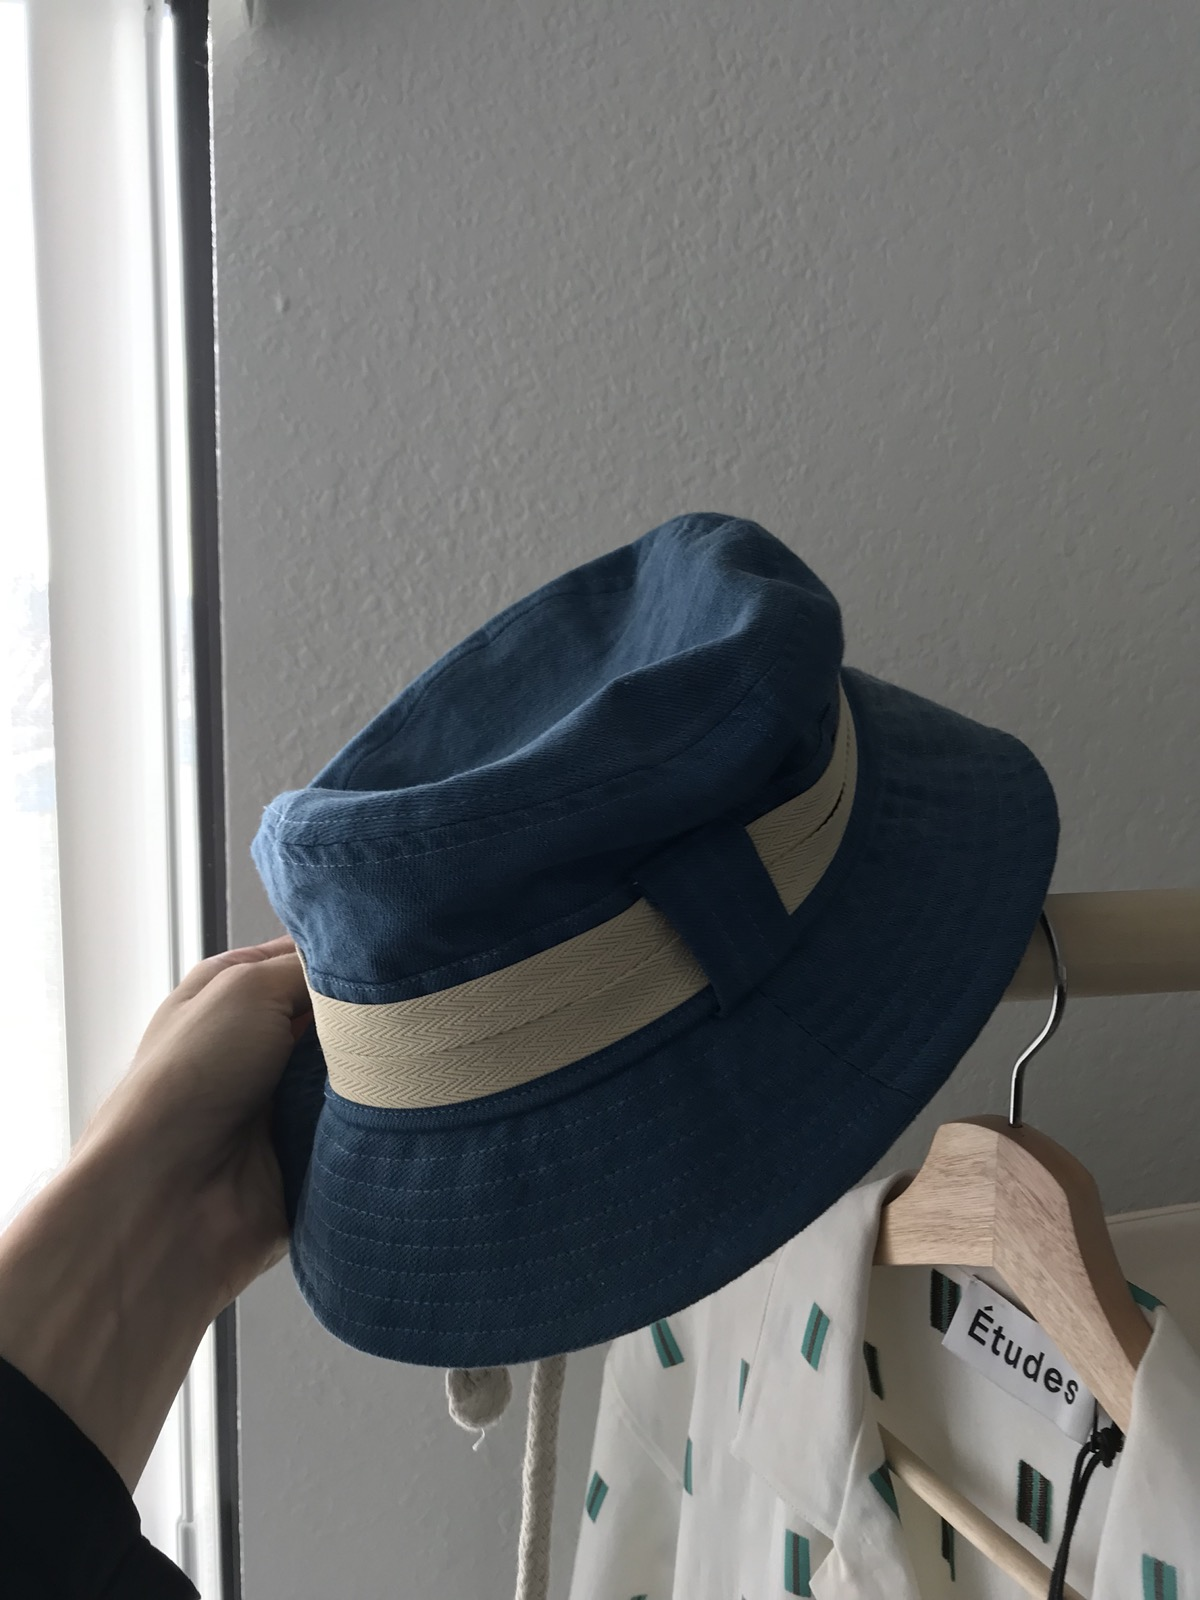 Acne Studios Acne Studios Denim Bucket Hat Size one size - Hats for ... 72cf6e78235d